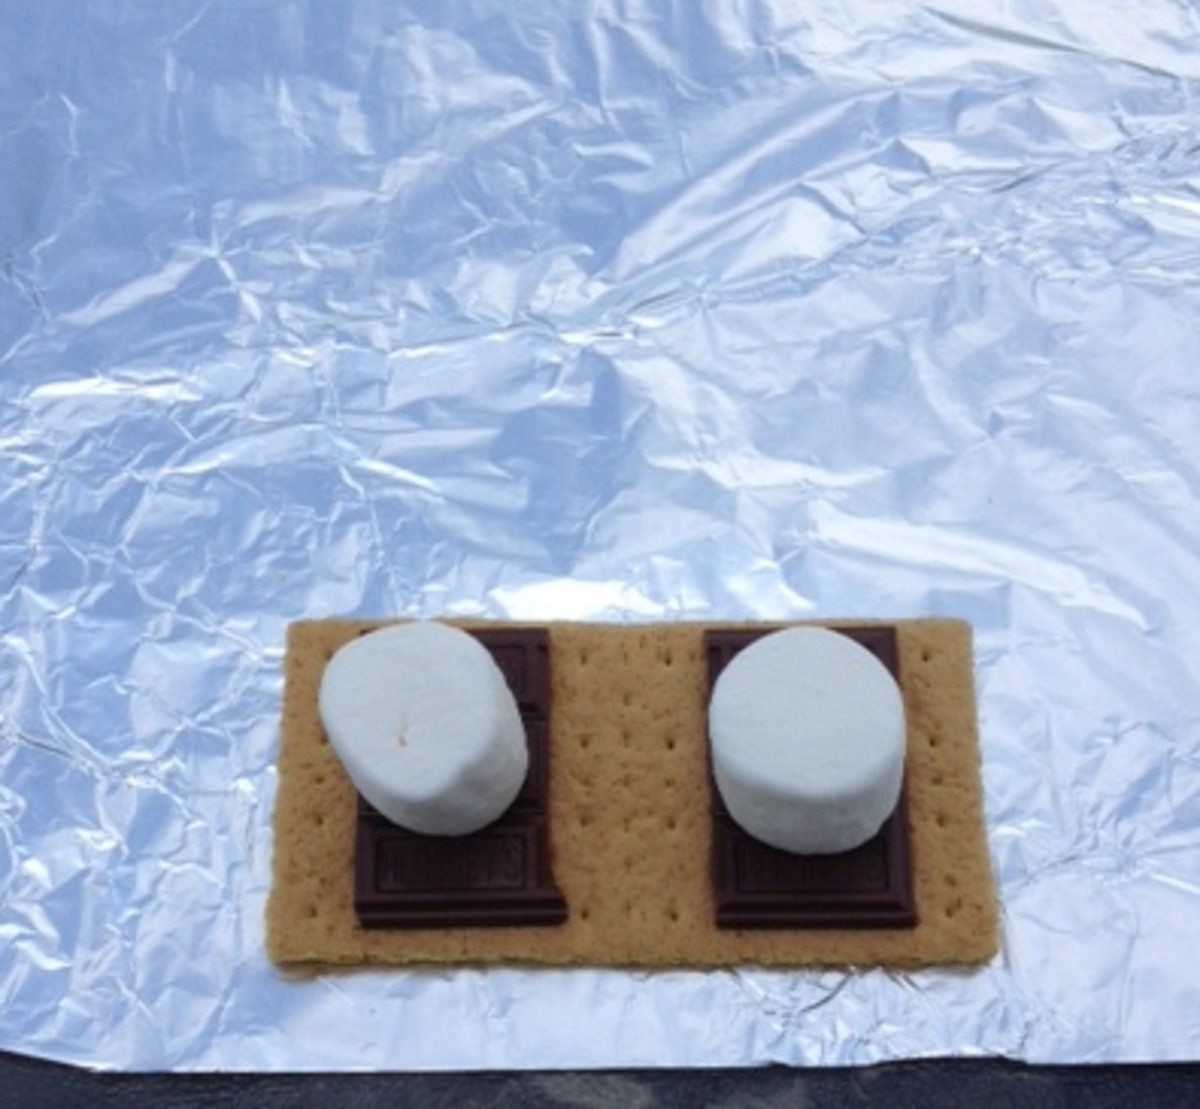 S'mores under construction